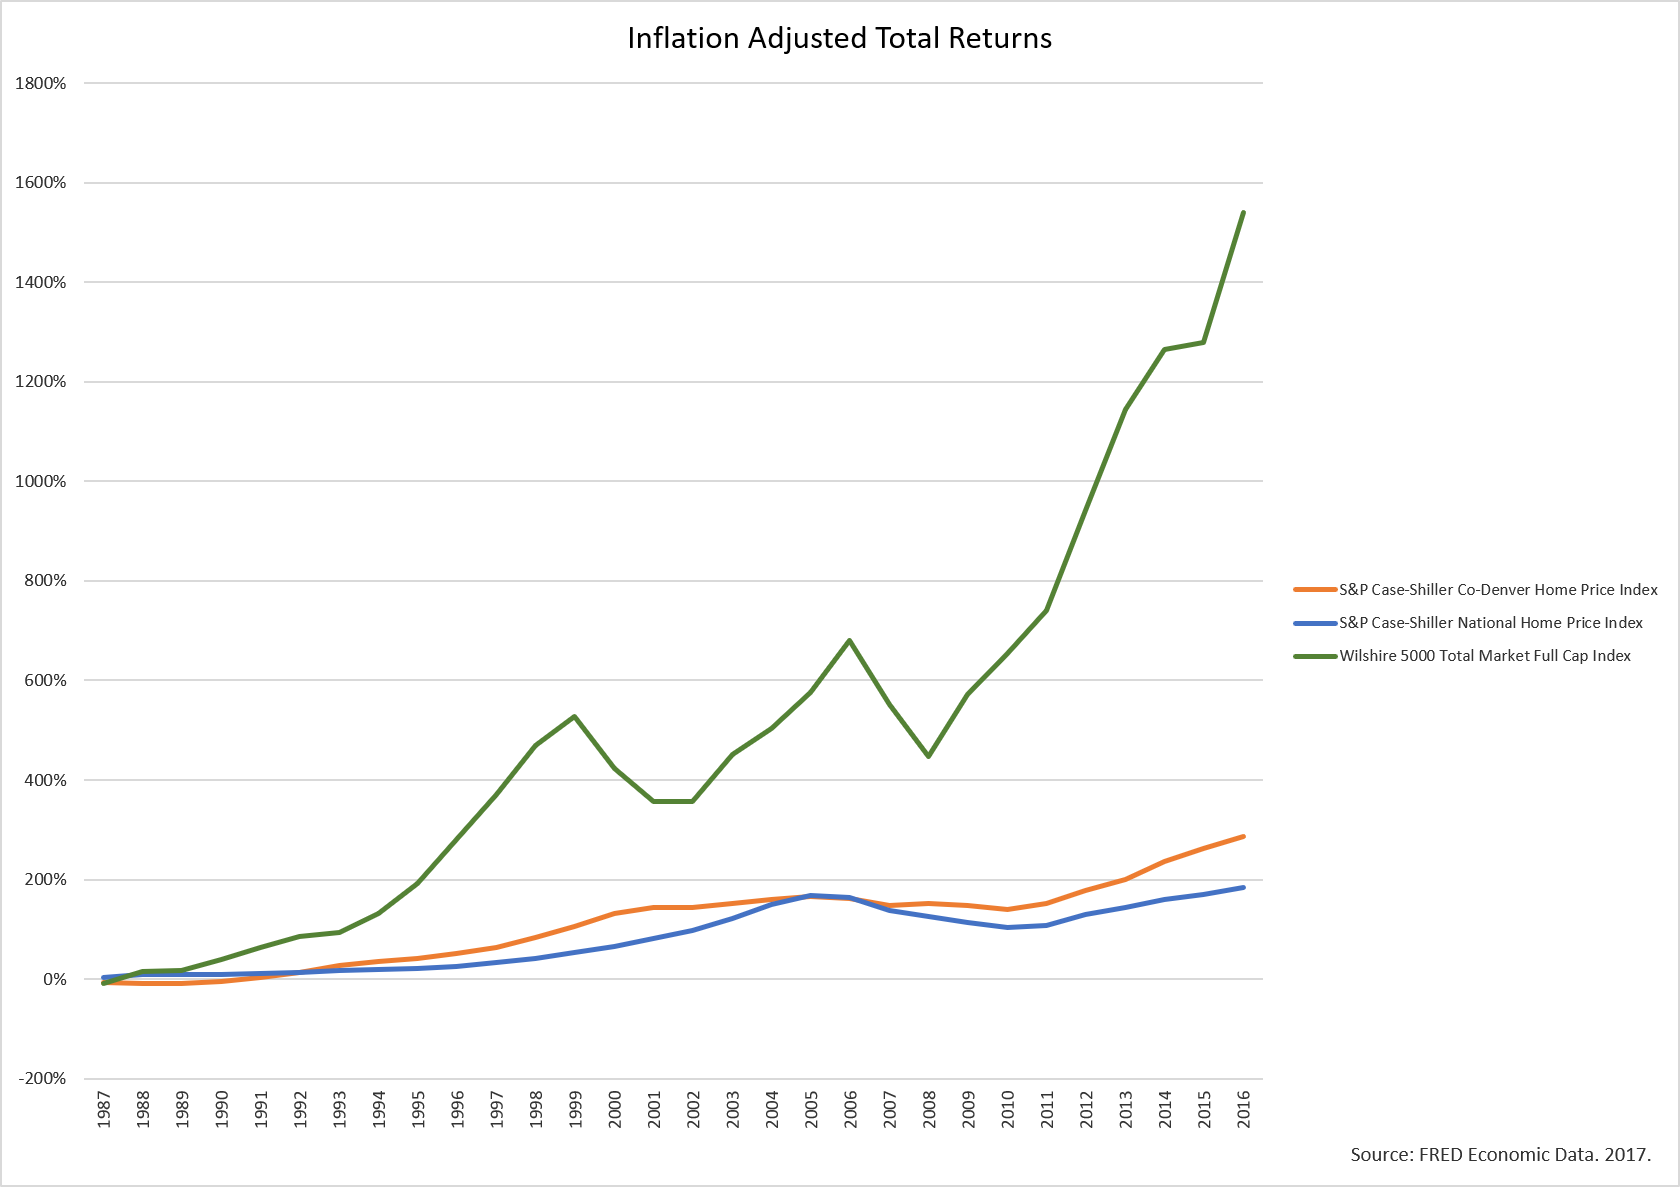 New_Real Estate Returns_Inflation Adjusted.png